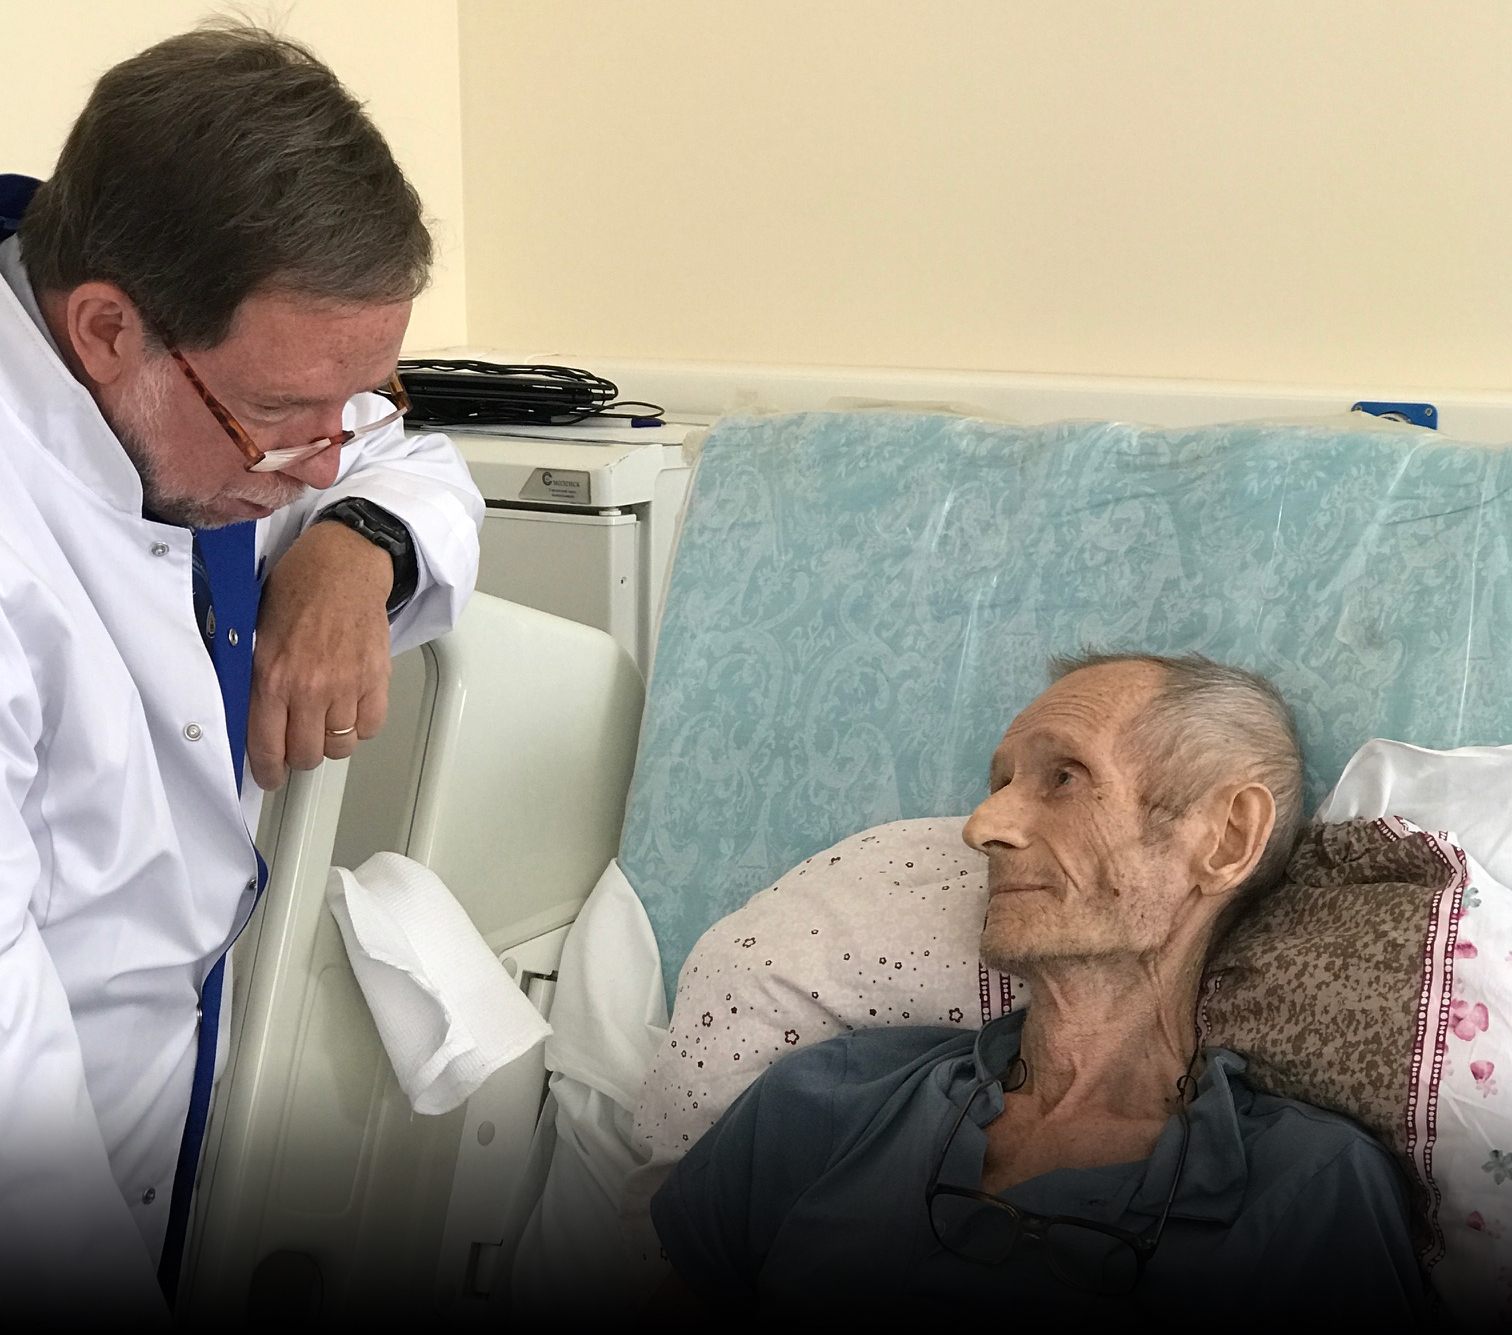 2019: Johns Hopkins Physician Conducts Clinical Rounds During the Opening of the Moscow Palliative Care Center